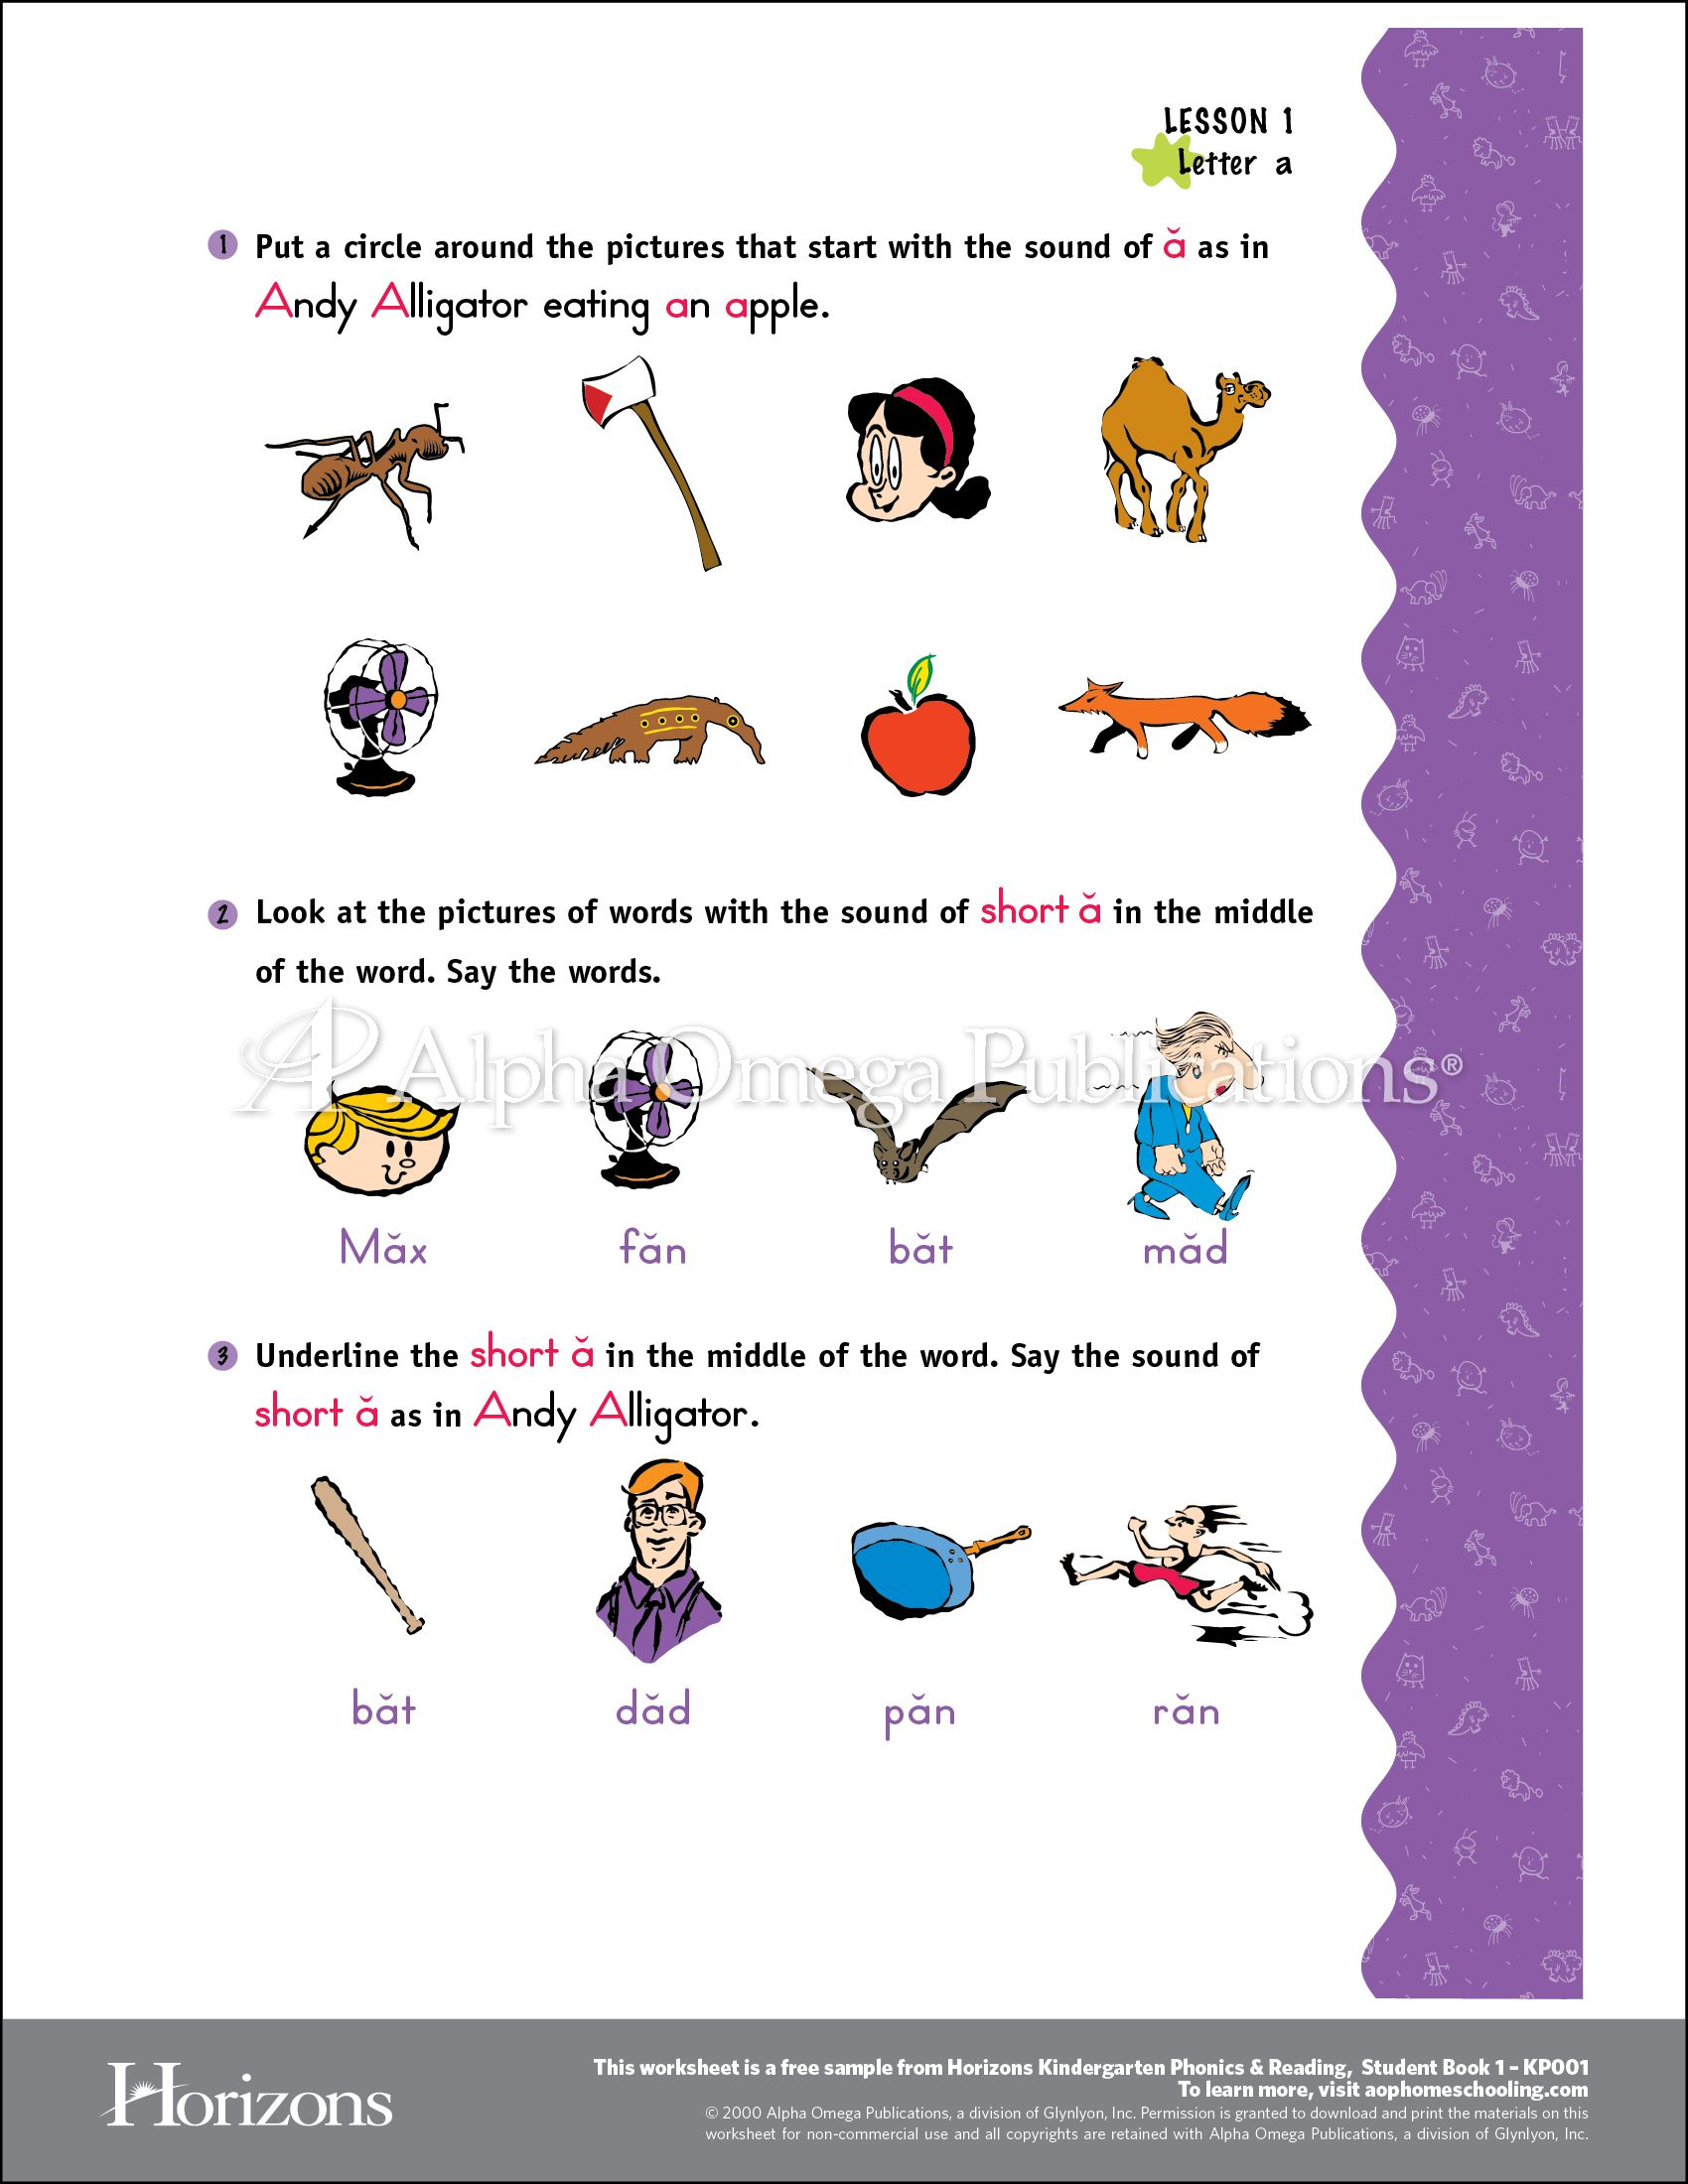 Worksheets Homeschooling Worksheets Free aop horizons free printable worksheet sample page download for homeschooling from alpha omega publications